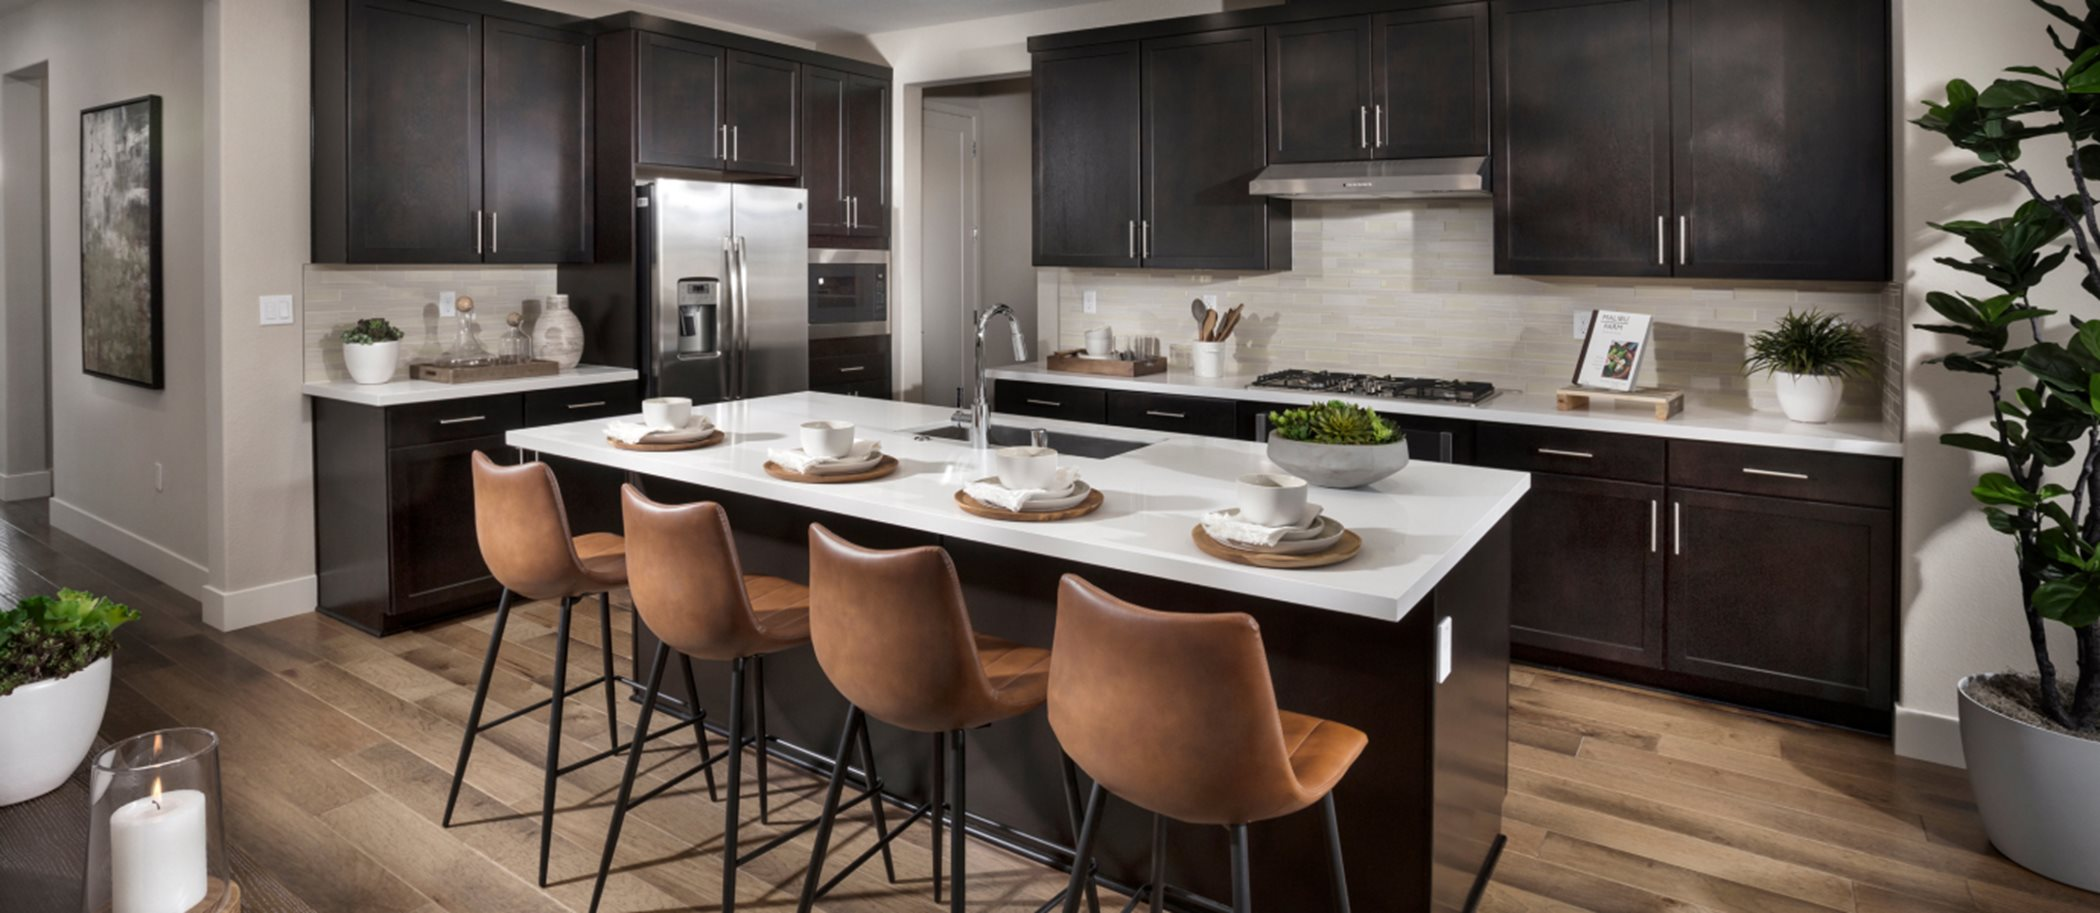 Tracy Hills Pearl Residence 2 Kitchen